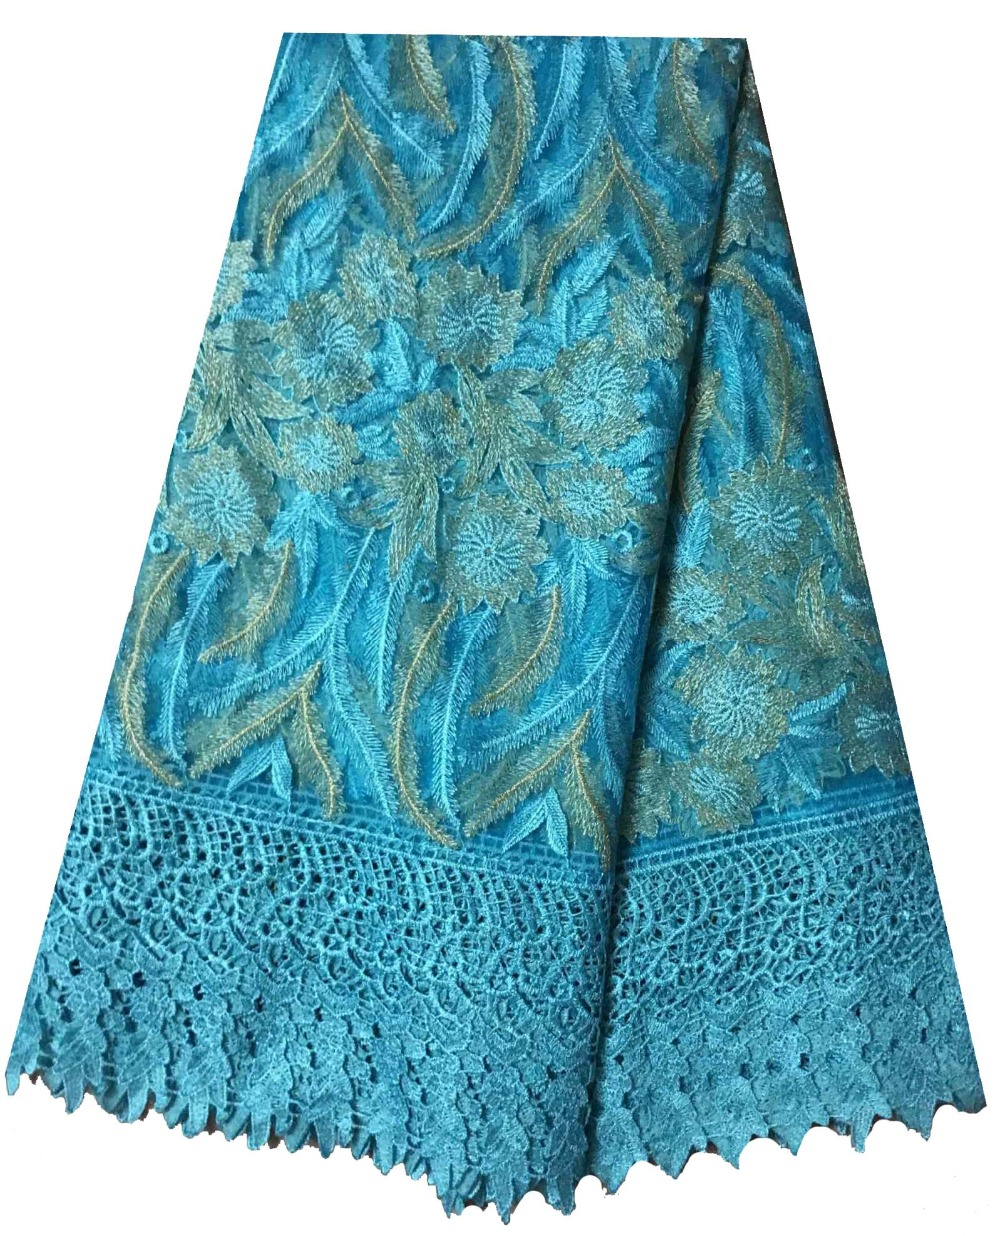 New Design African Lace Fabric 2017 Sky Blue Color French